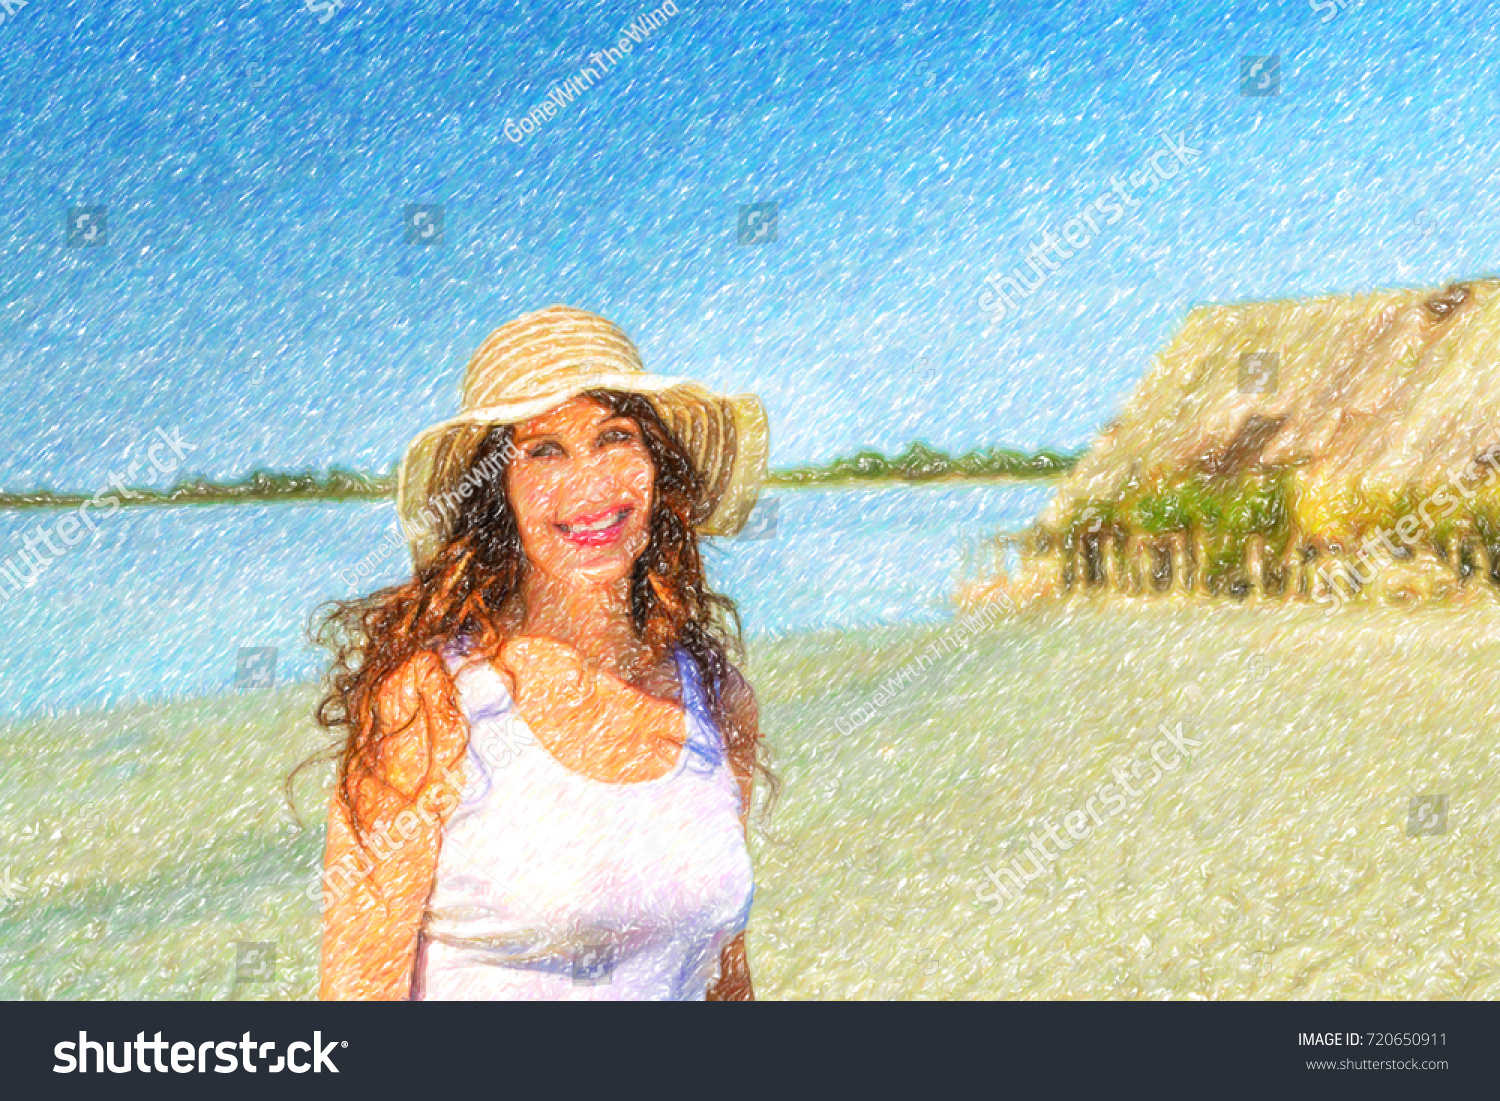 Attractive mature busty woman in very good shape with wide hat on a sun  split beach